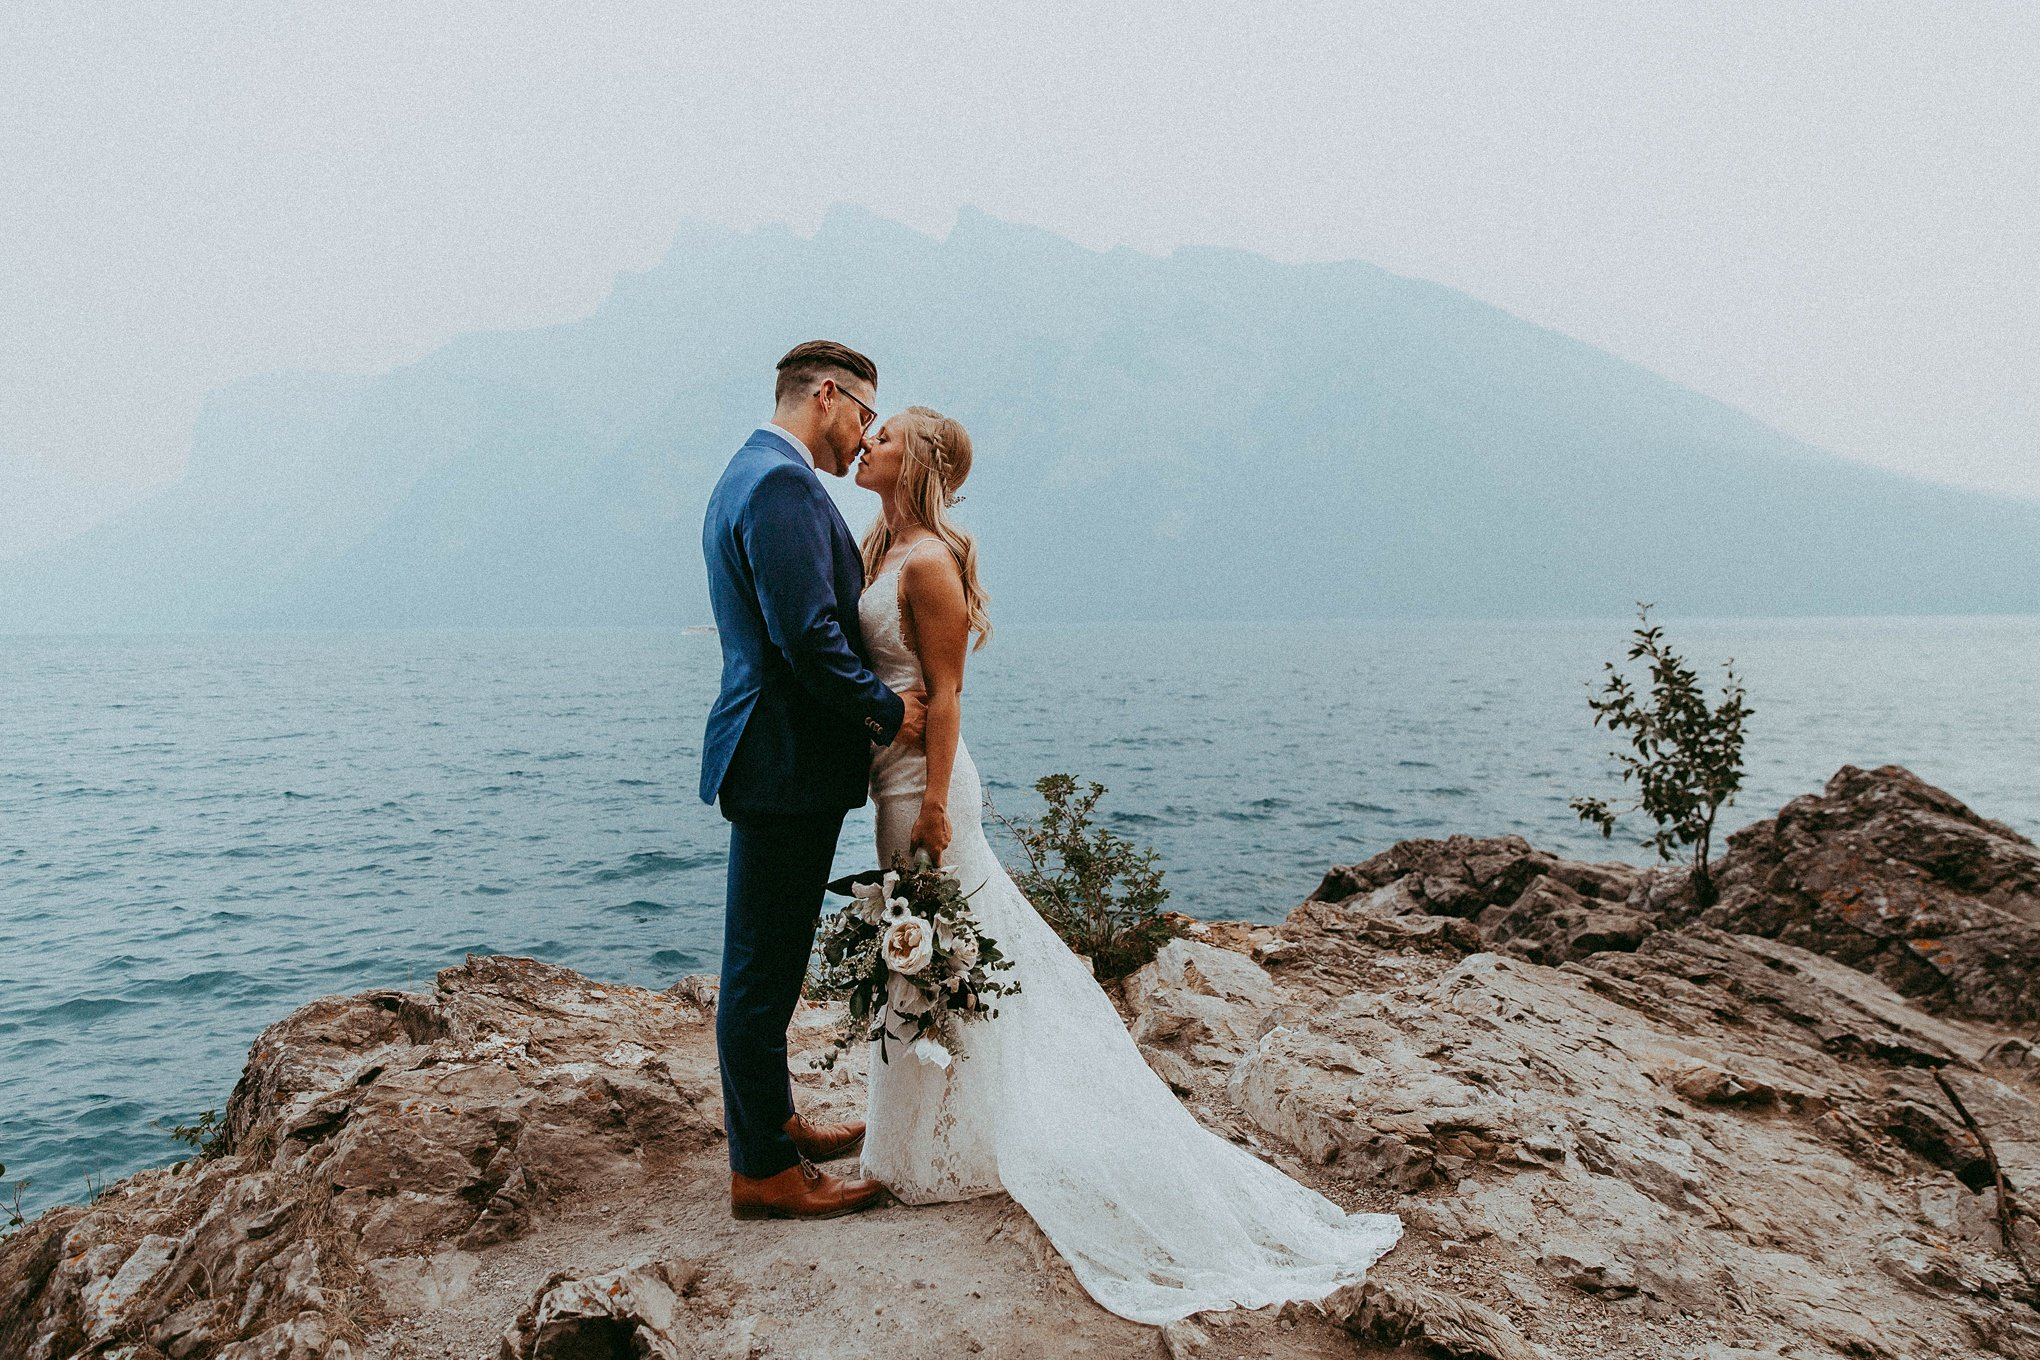 lake minnewanka, lake minnewanka wedding, adventerous wedding, adventure wedding, adventure wedding photographer, adventerous wedding photographers, adventerous wedding photographers banff